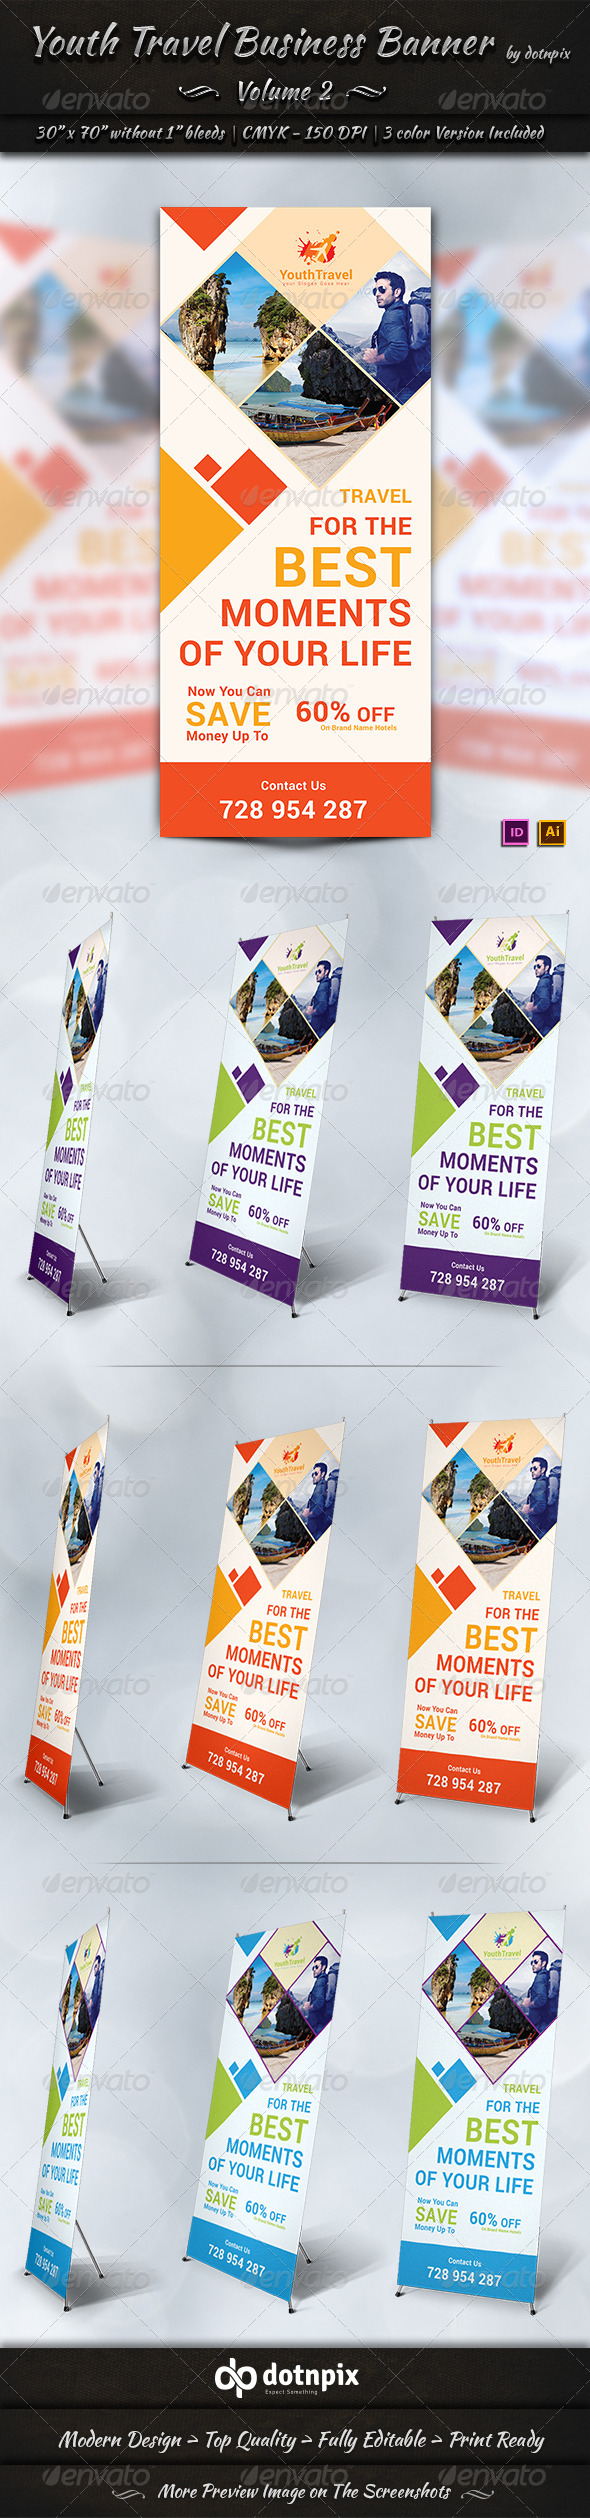 Travel Tourism Business Banner Volume 3